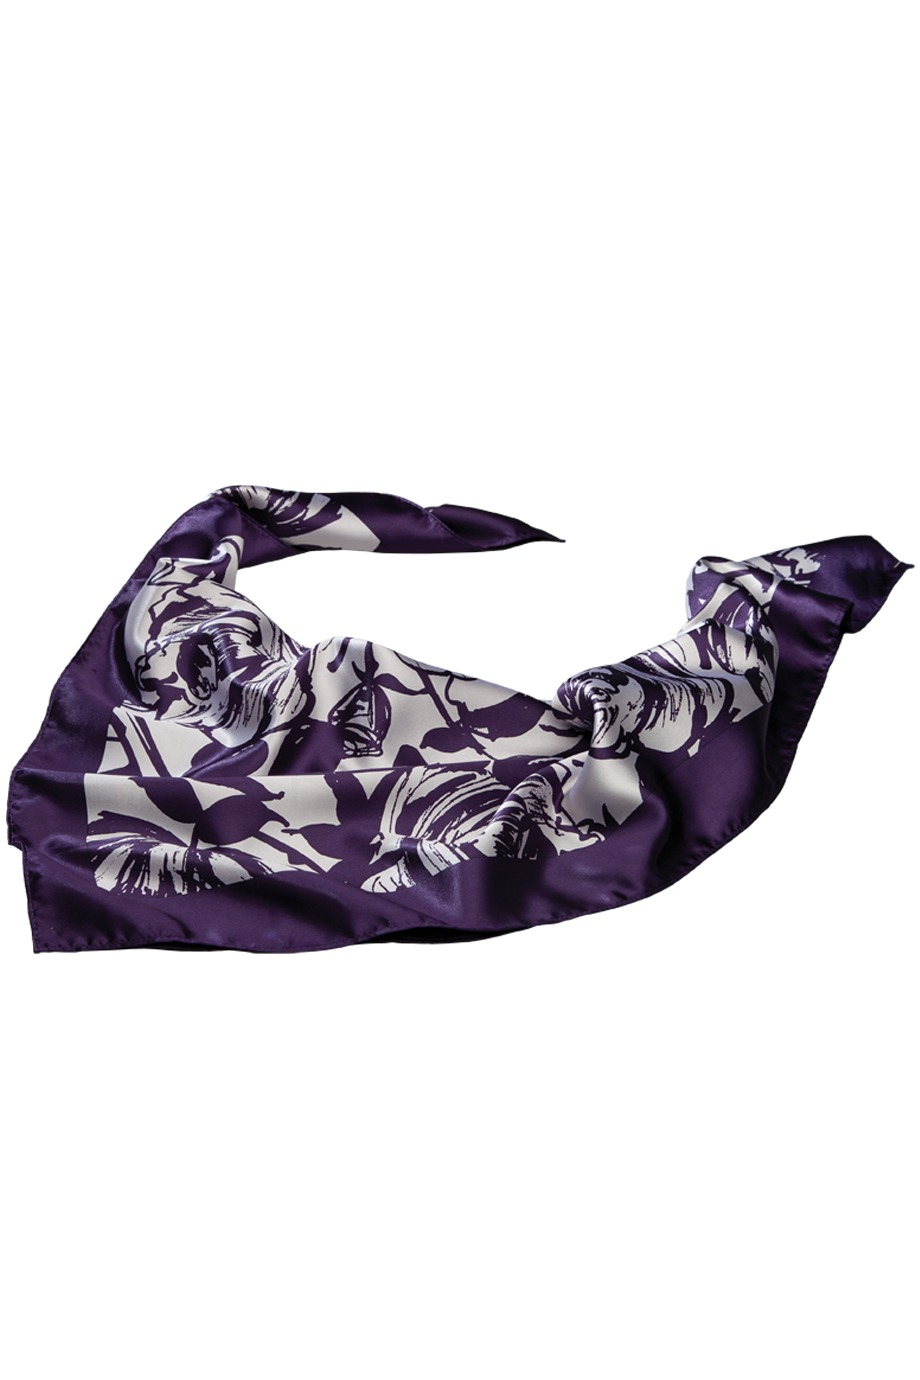 Edwards Garment SC52 - Floral Scarf